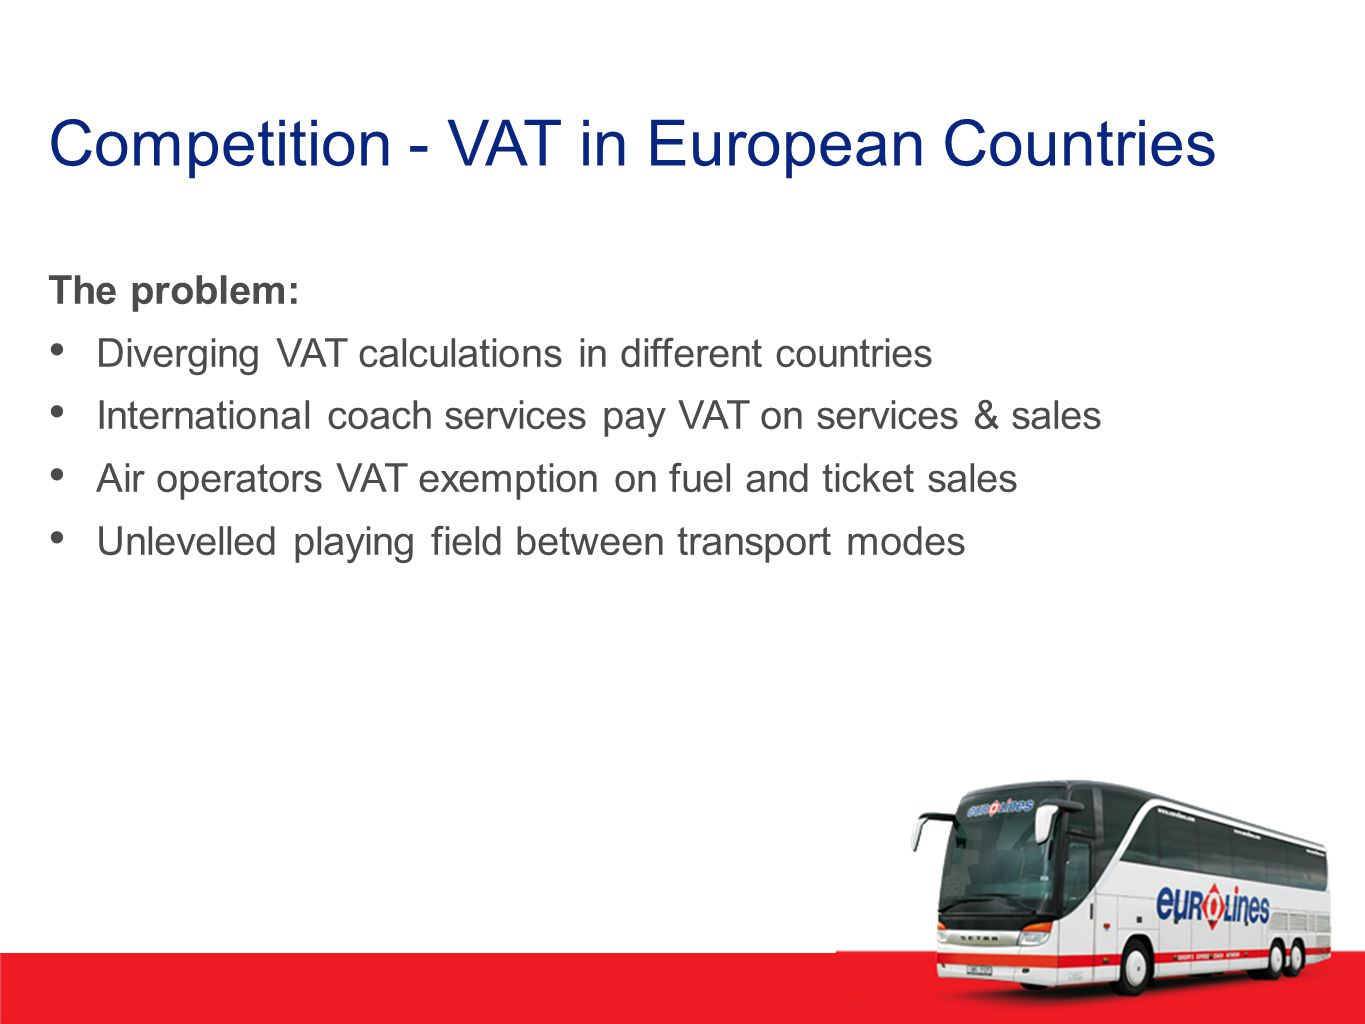 Competition - VAT in European Countries The problem: Diverging VAT calculations in different countries International coach services pay VAT on services & sales Air operators VAT exemption on fuel and ticket sales Unlevelled playing field between transport modes